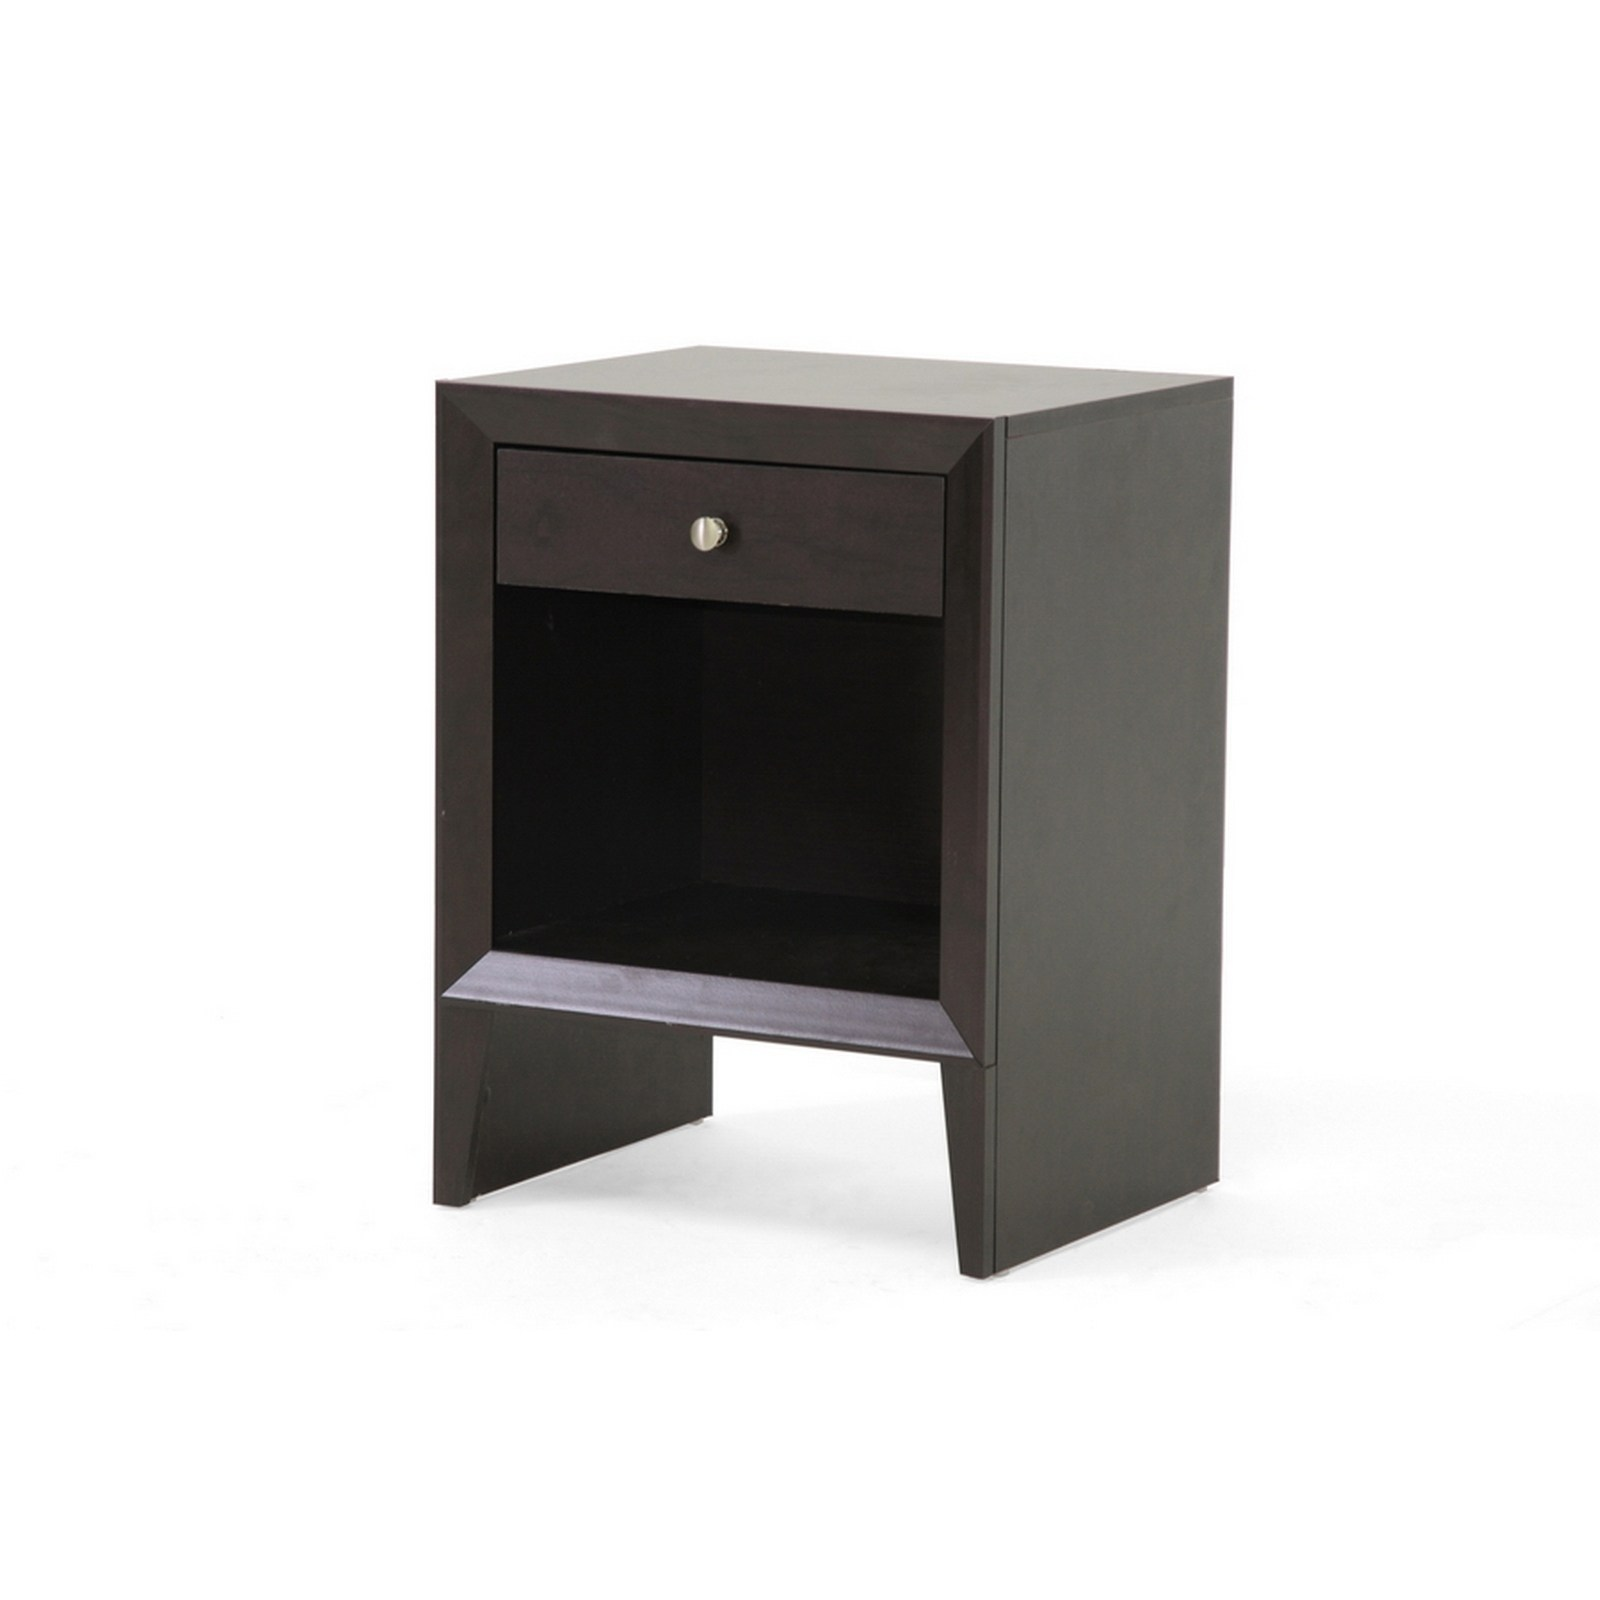 urban designs inch leelanau brown modern accent table and nightstand tables free shipping today round wood iron coffee vita silvia pool umbrella coastal furnishings affordable